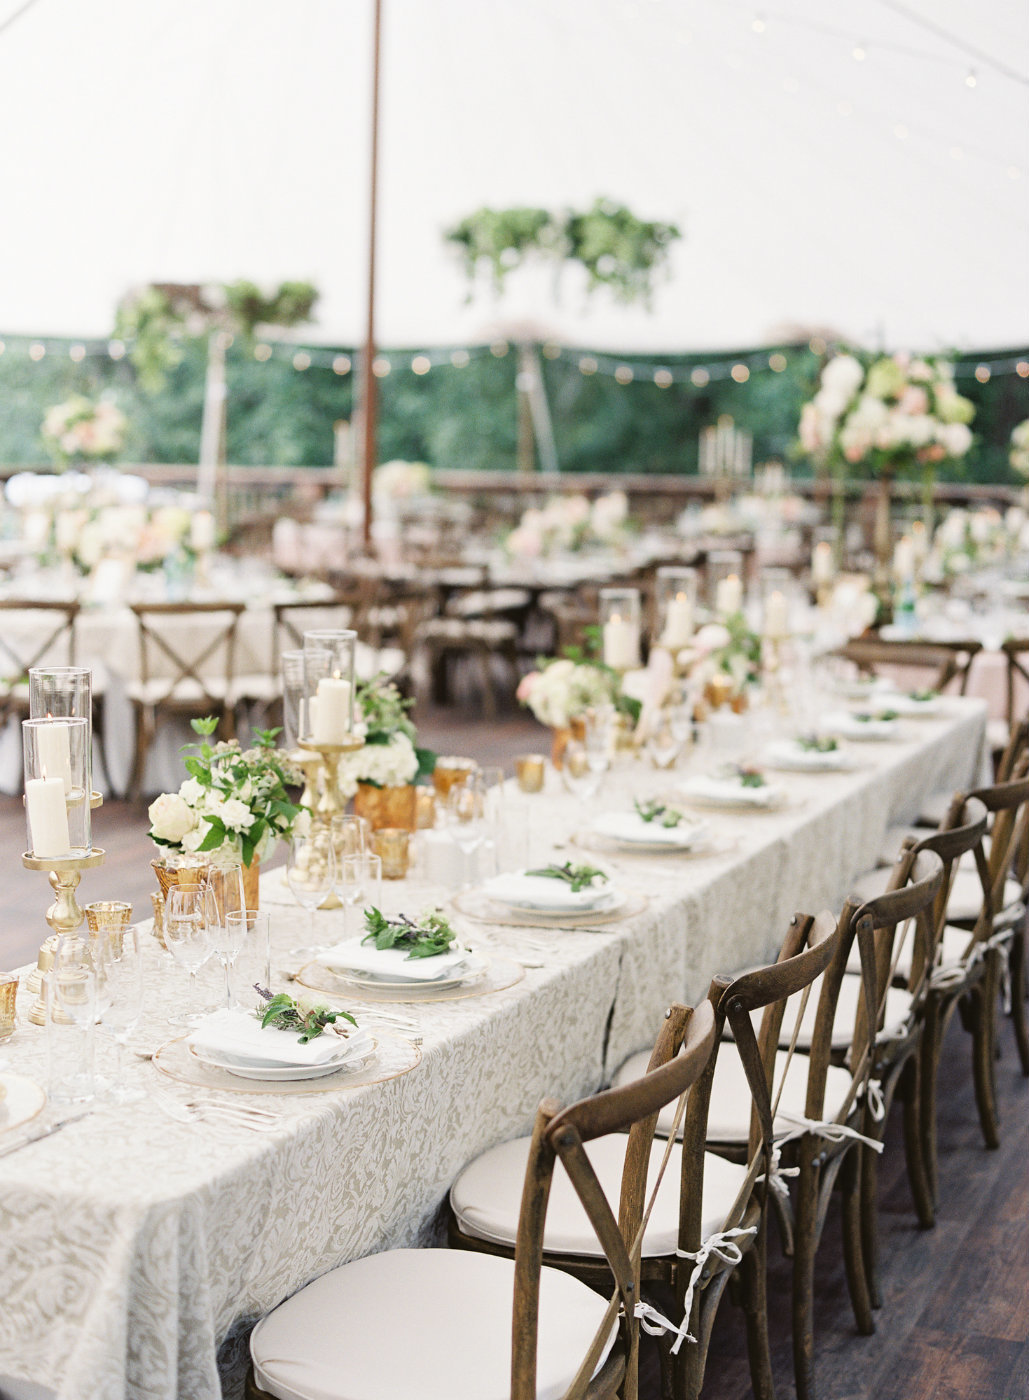 Gorgeous summer tent wedding with green vine hanging instillations.